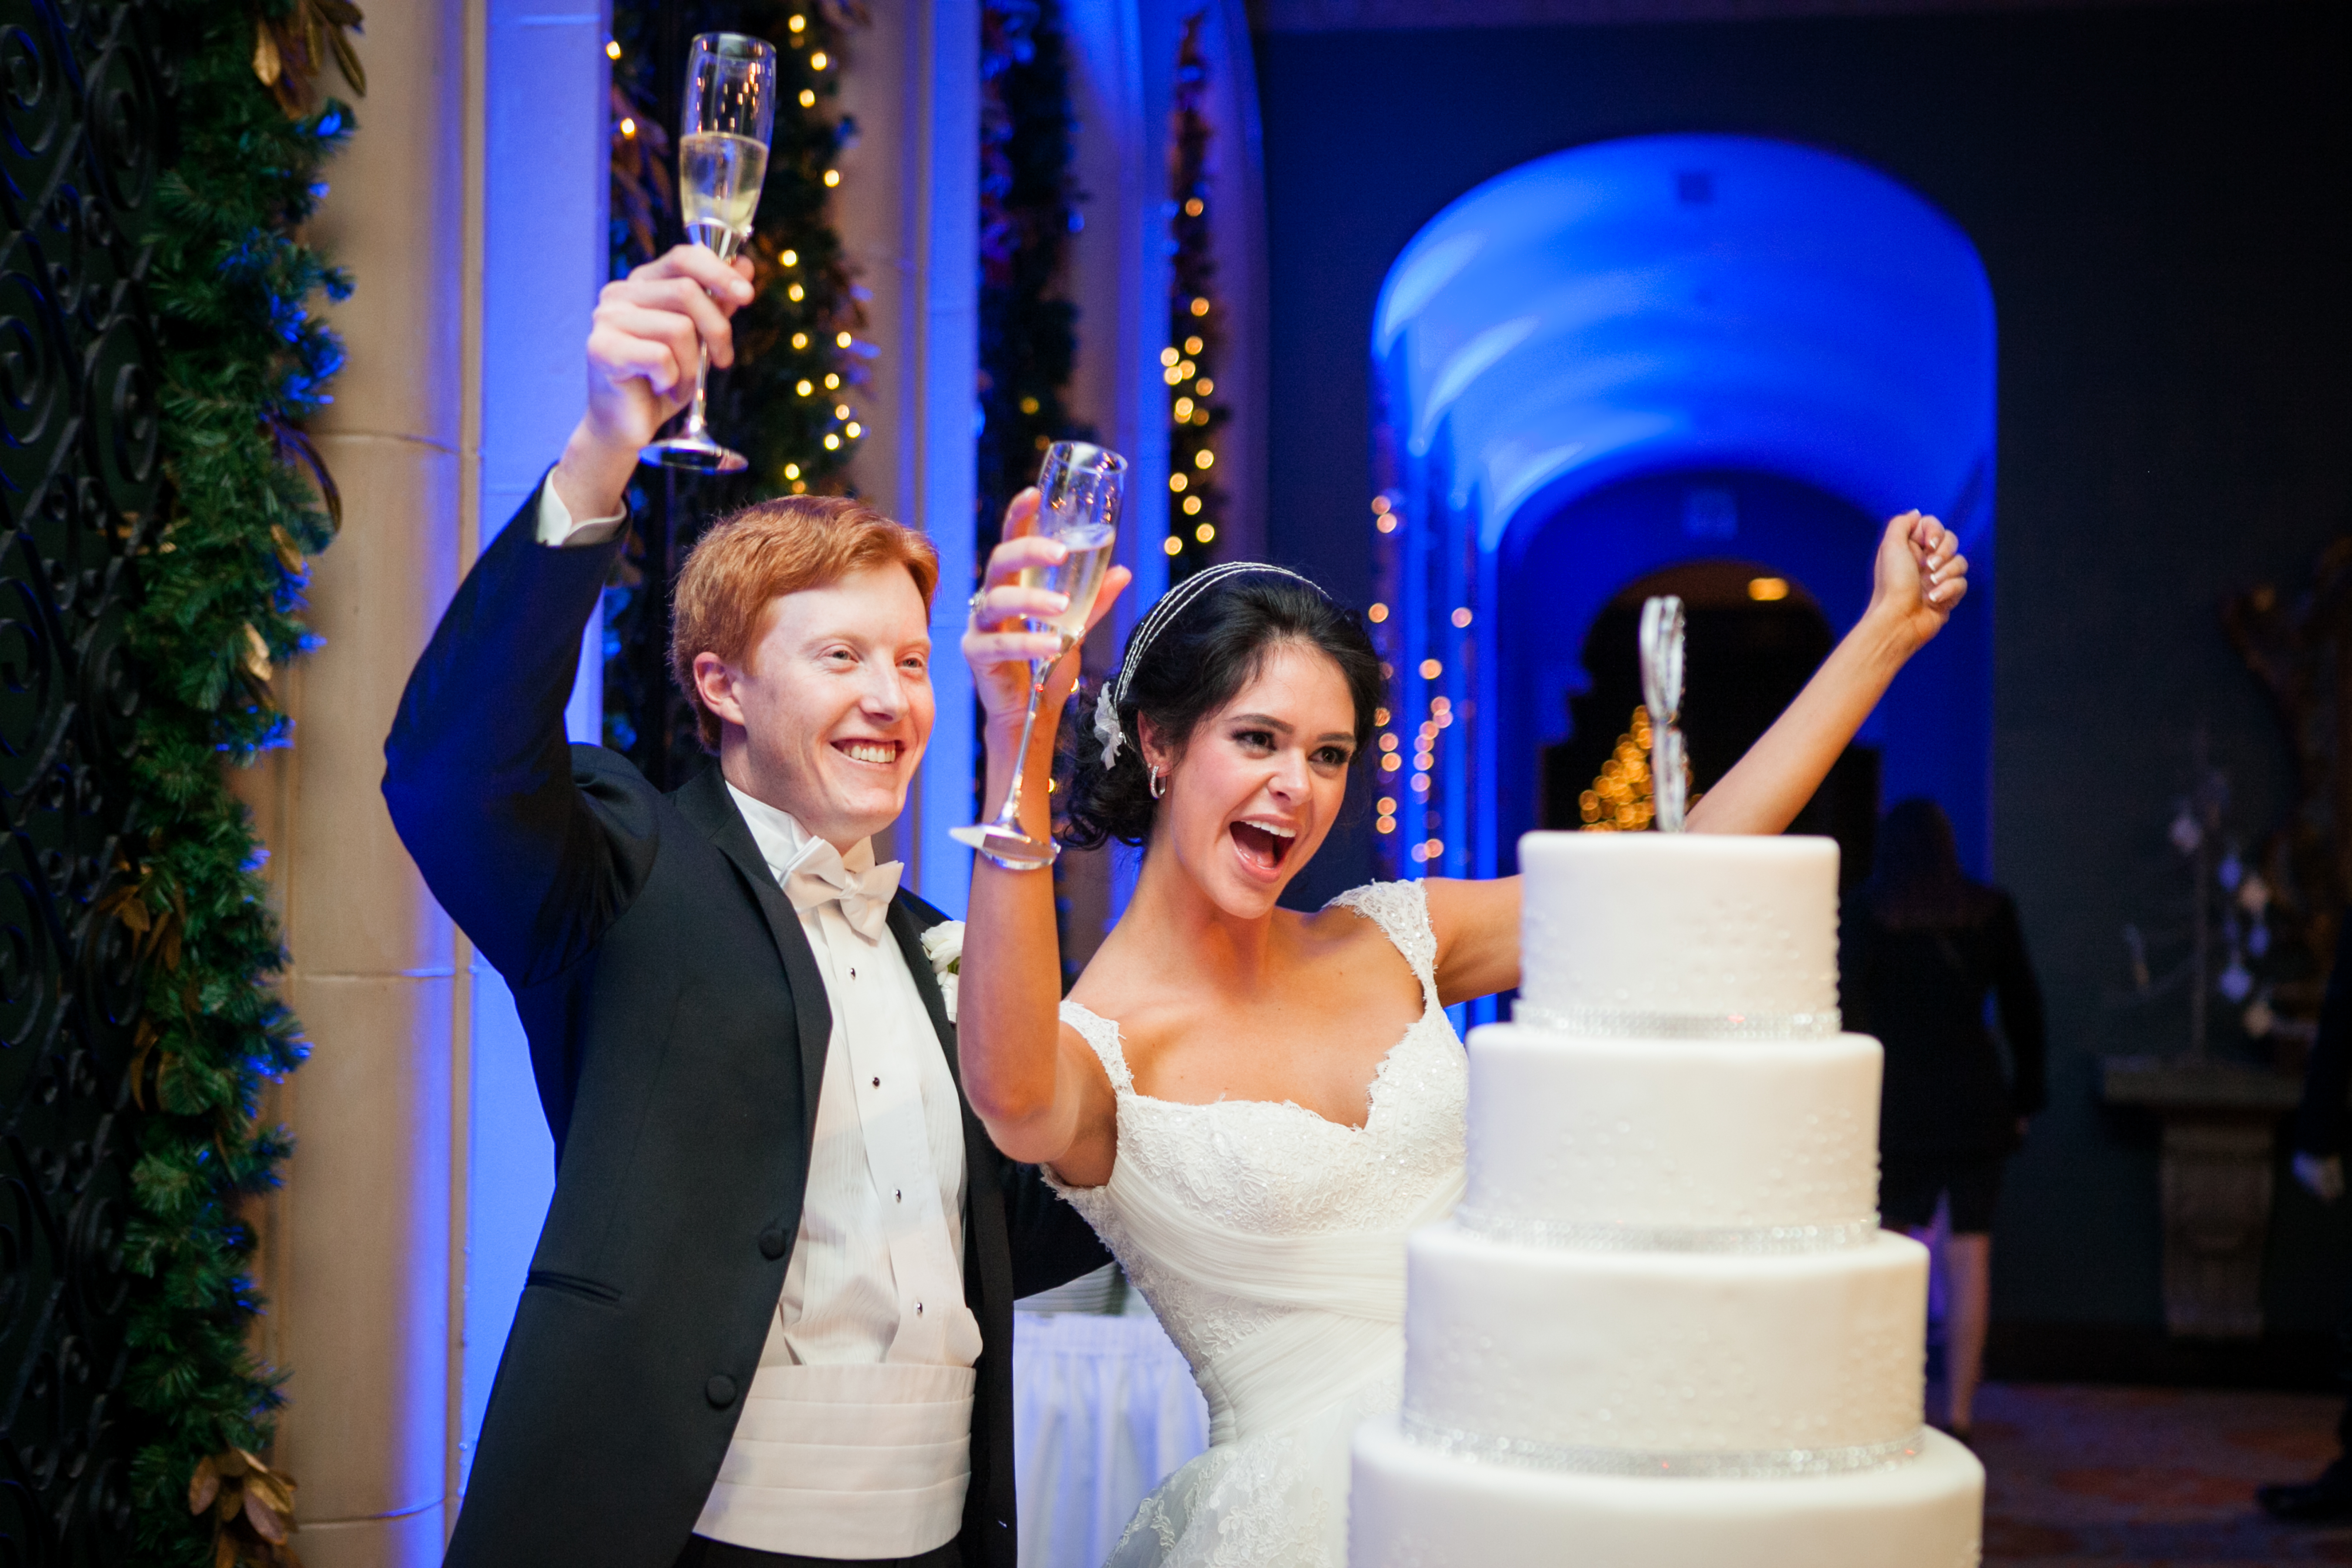 Fort Worth Club Wedding Packages Fort Worth Club Events